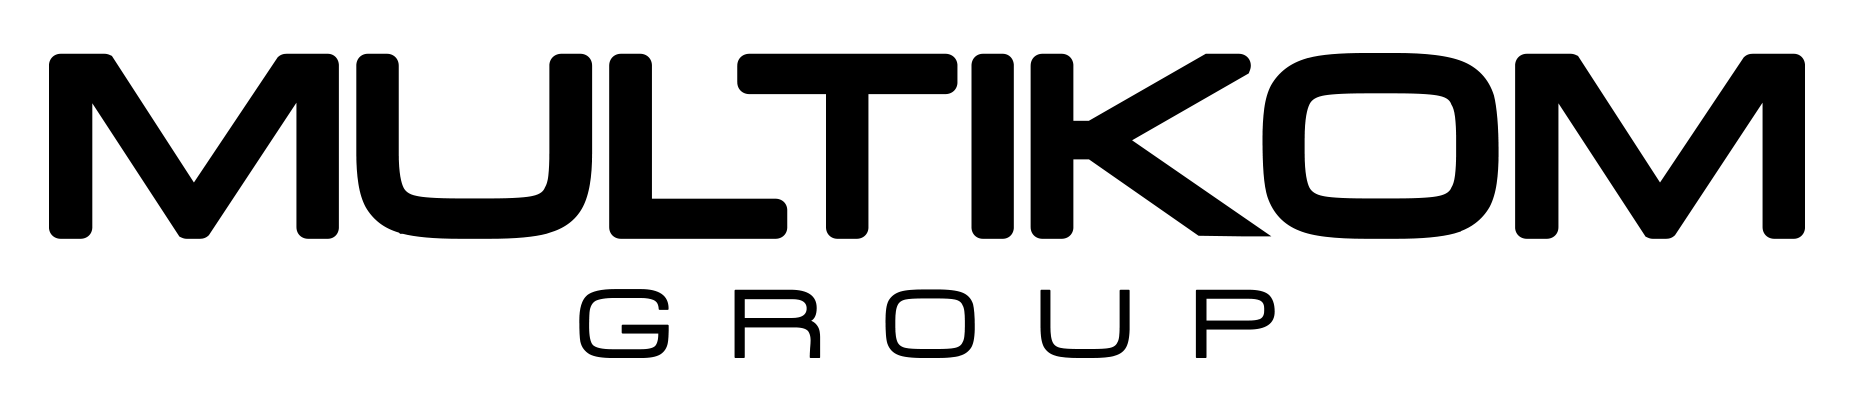 http://www.3kproduction.rs/wp-content/uploads/2017/09/multicom_logo.png